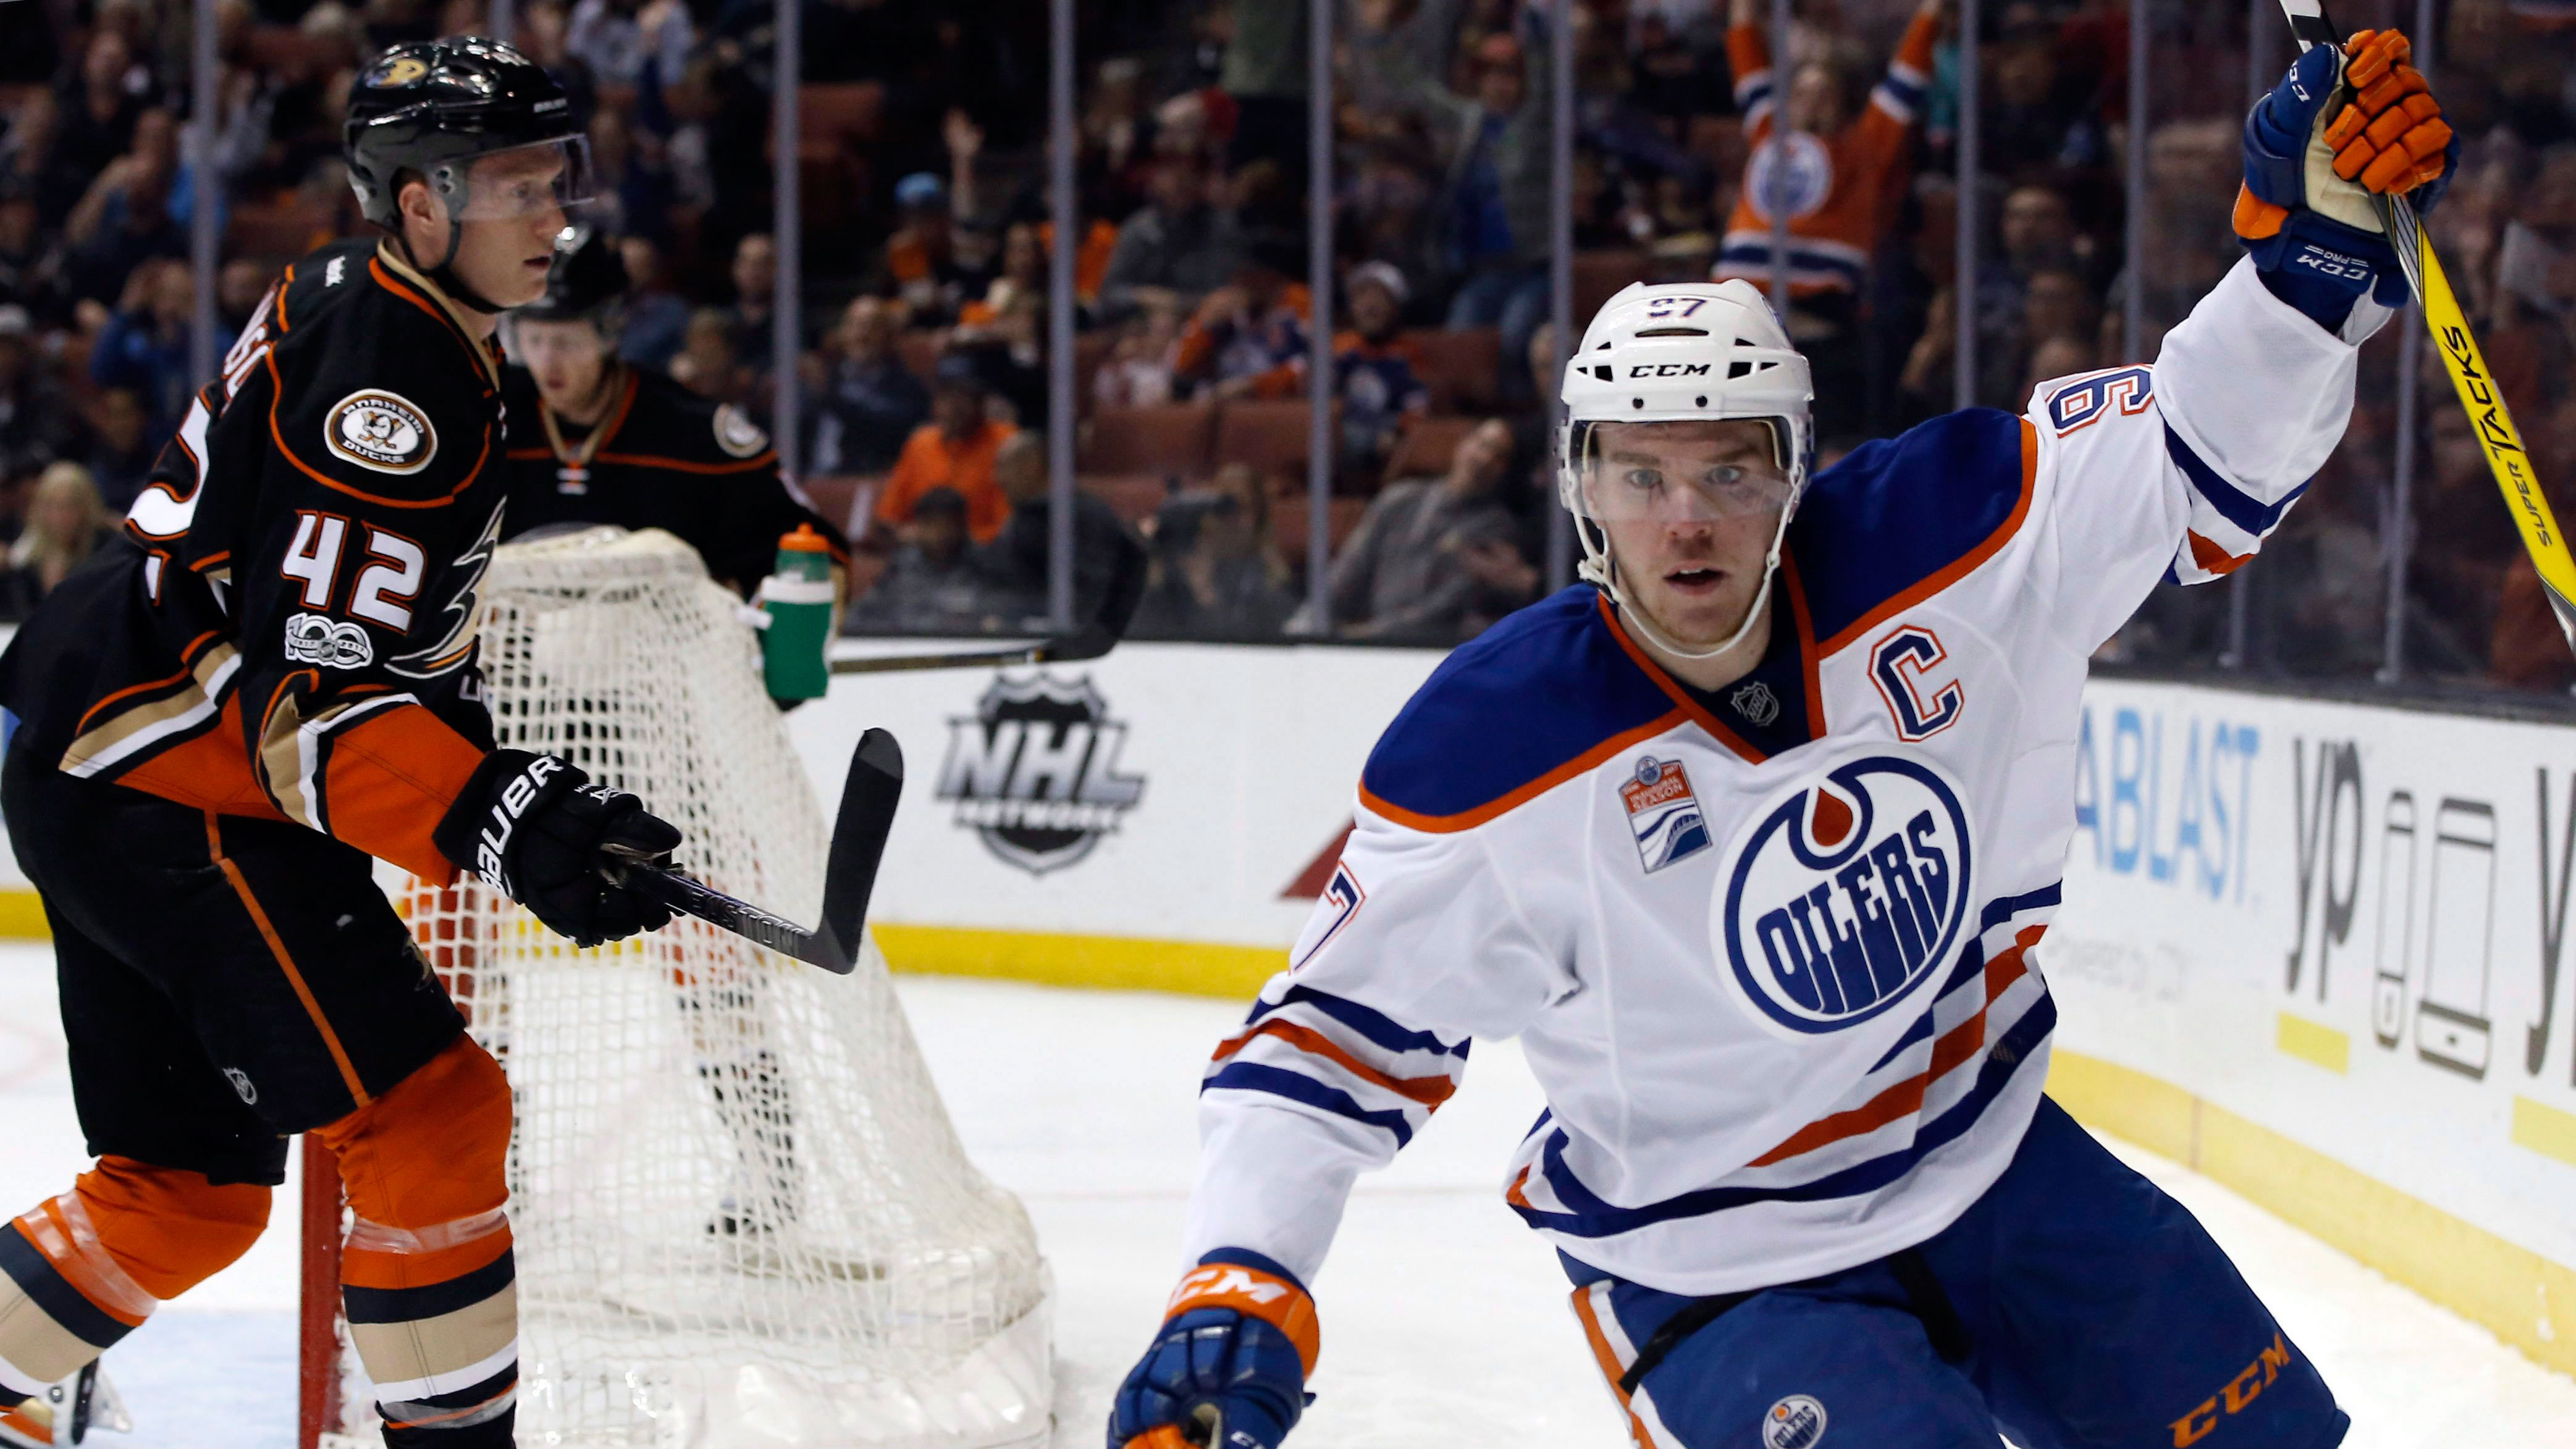 Figuring out how the Oilers can take down the Ducks